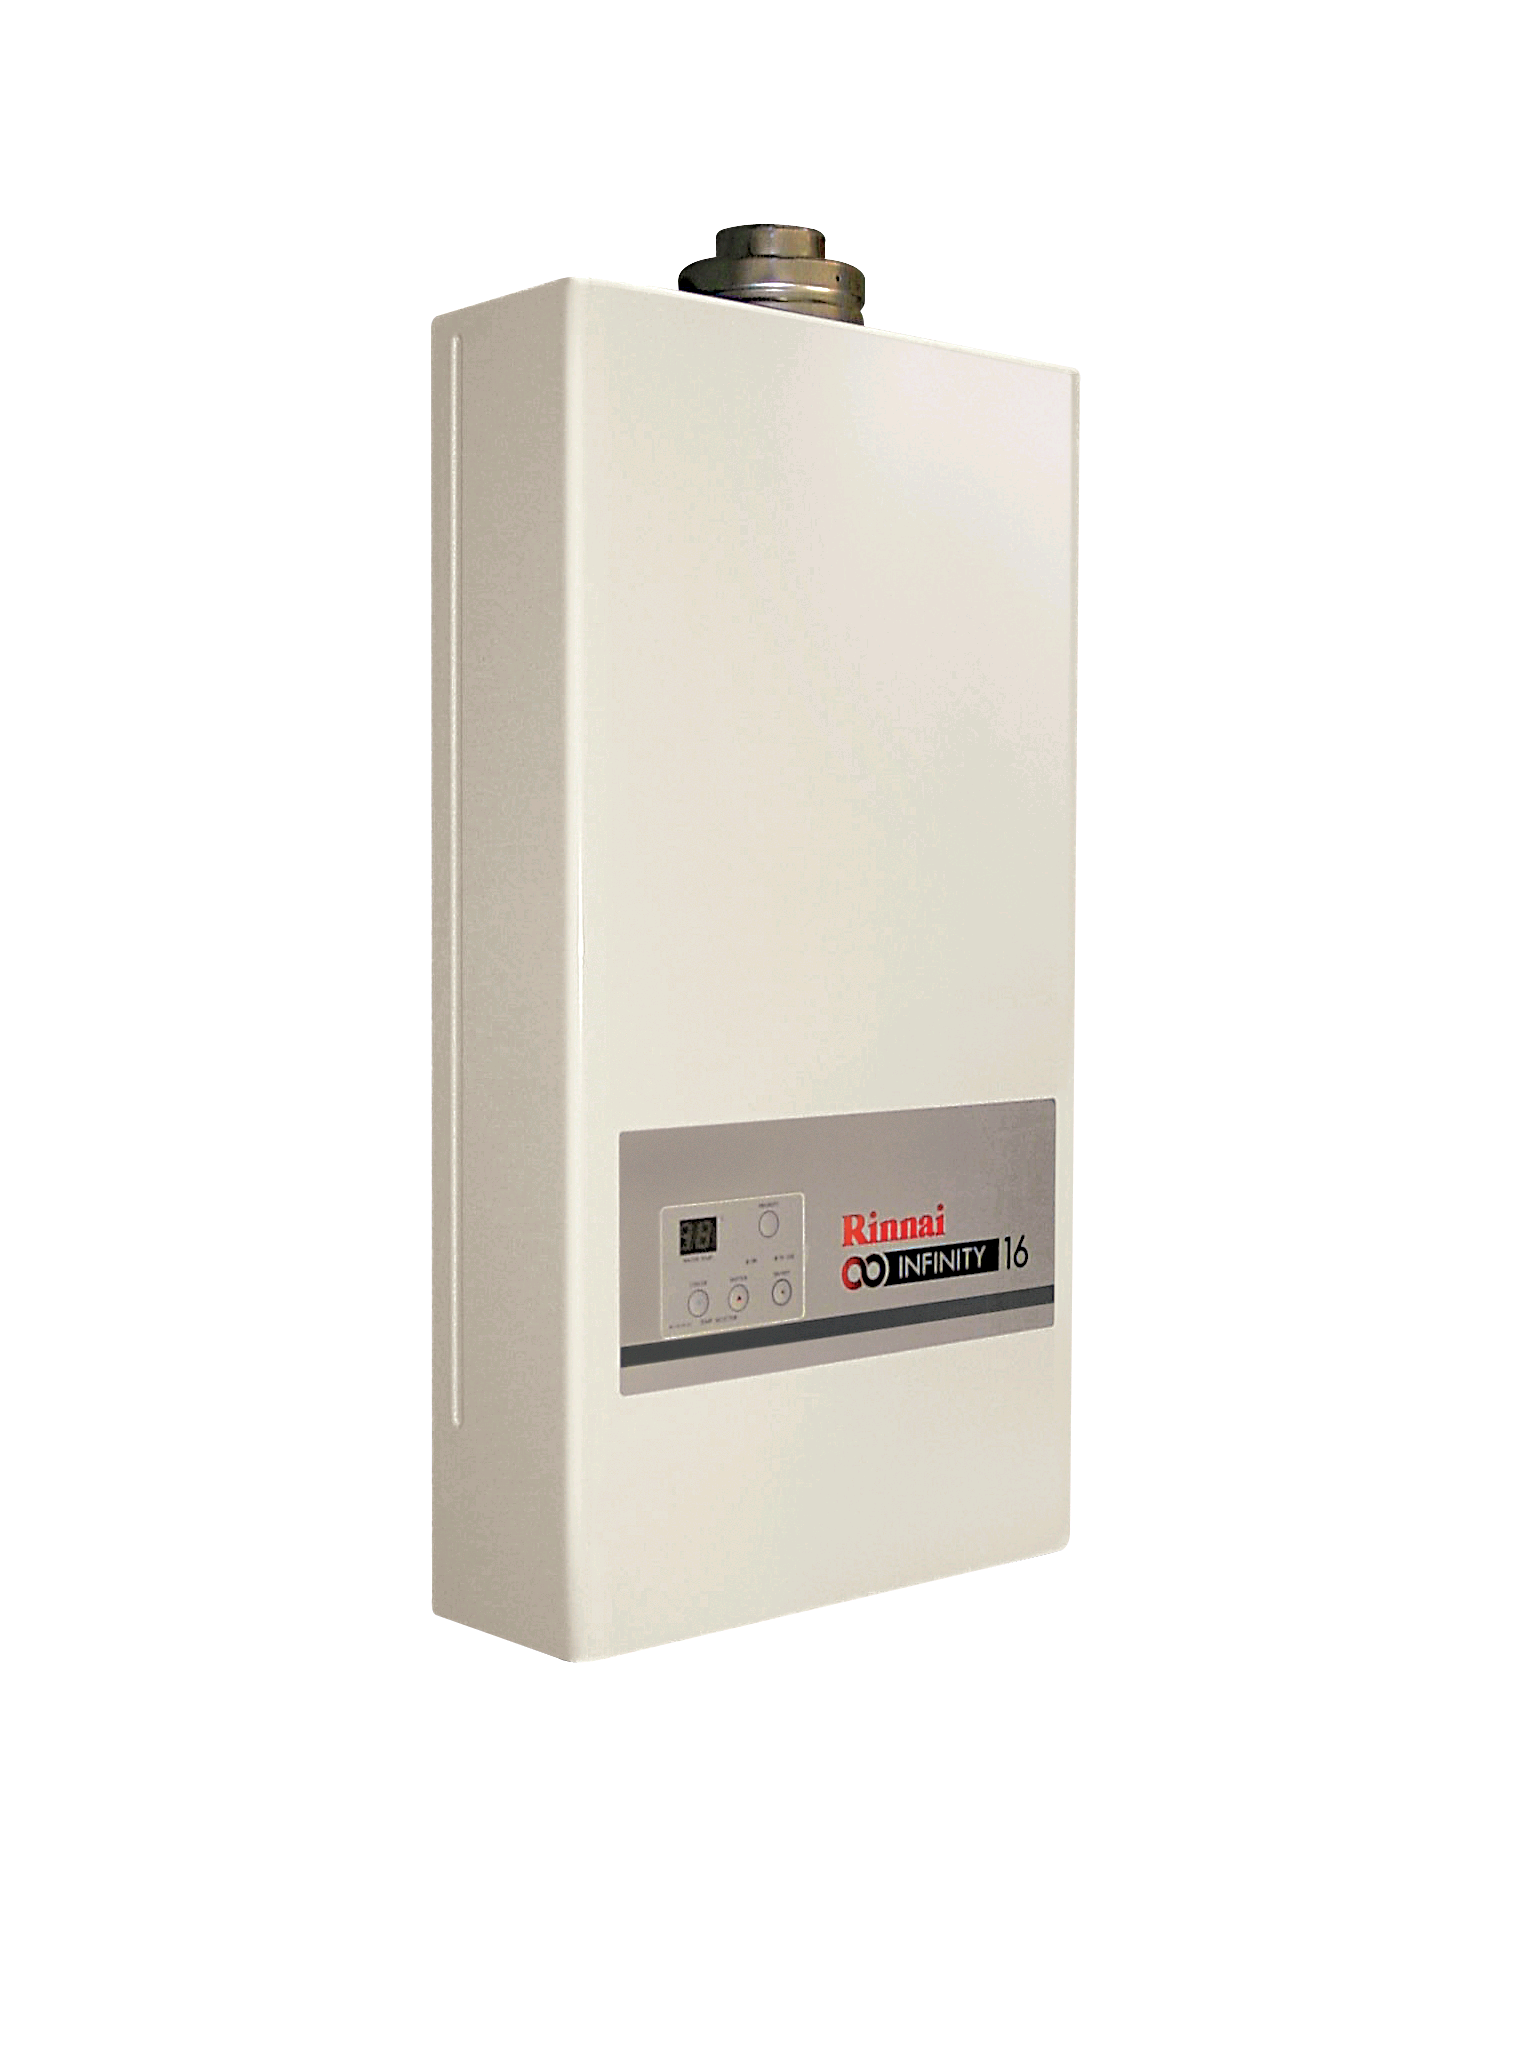 Rinnai Infinity 16i Water Heater (Natural Gas)